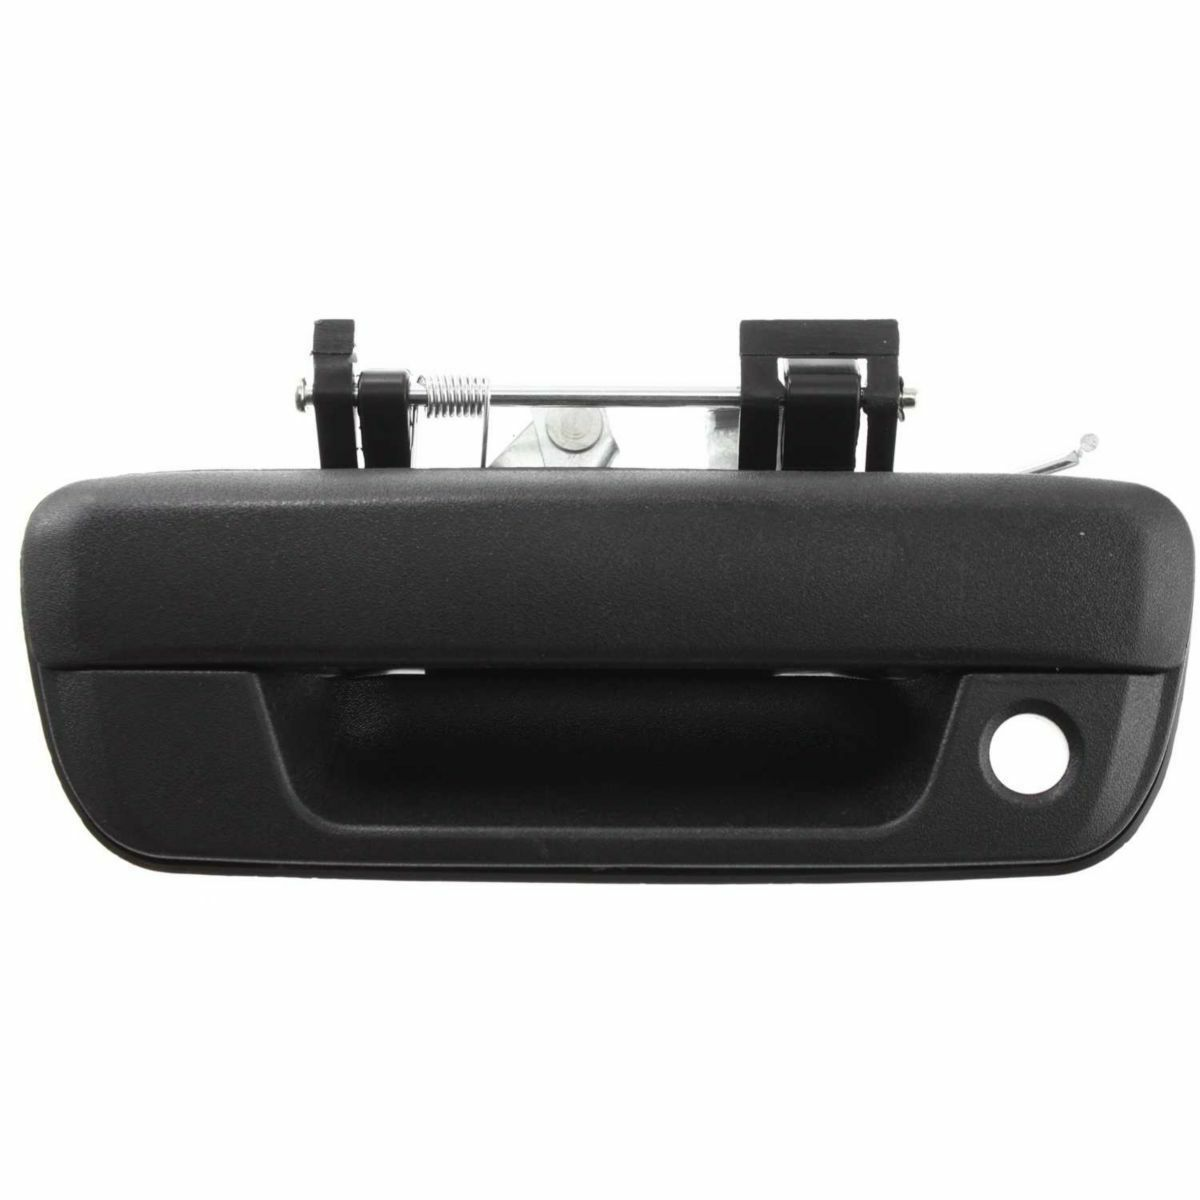 Chevrolet Colorado Tailgate Handle Assembly 25801998 2004-2012 GMC Canyon